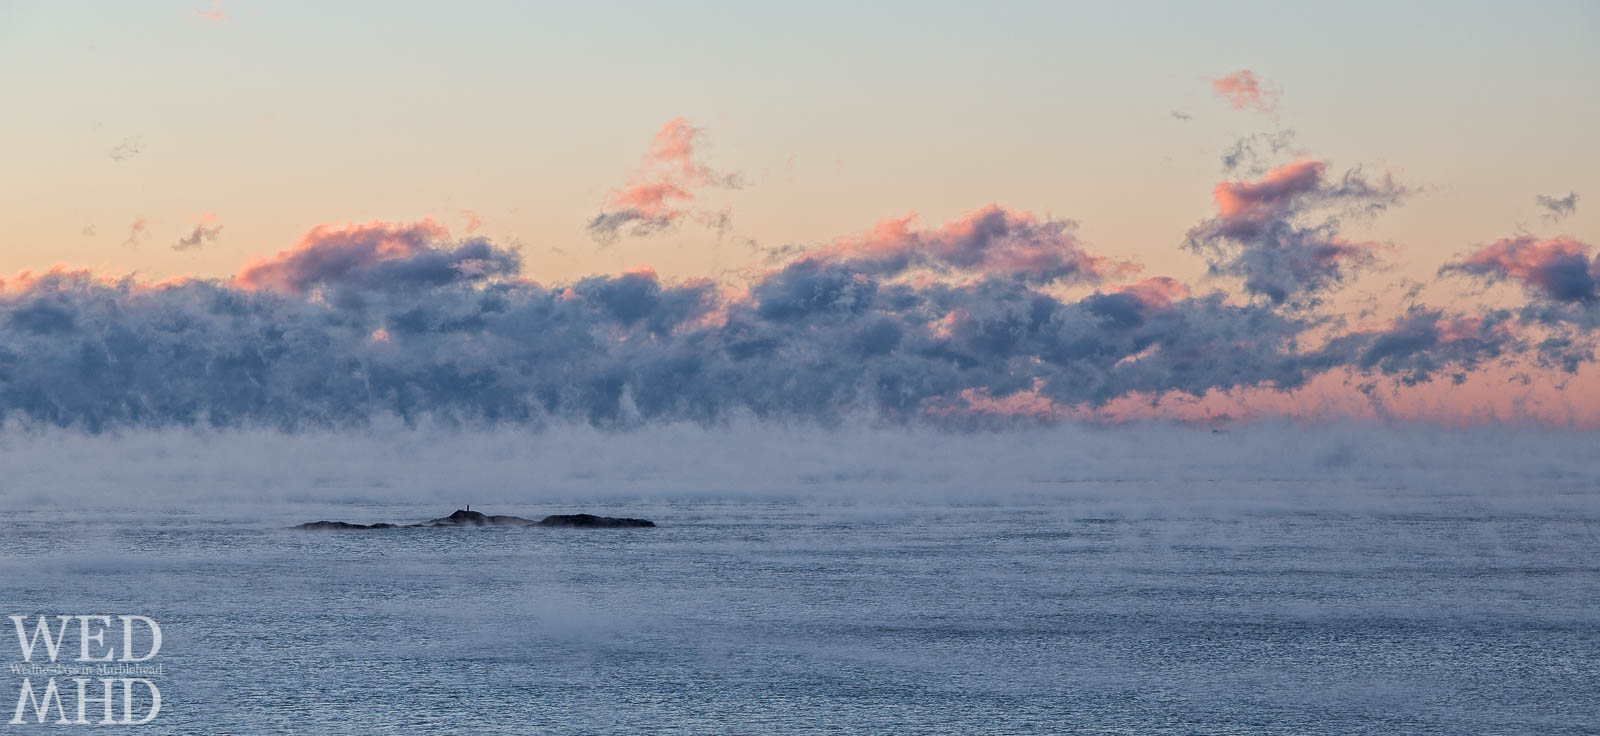 tom moore rock is surrounded by sea smoke